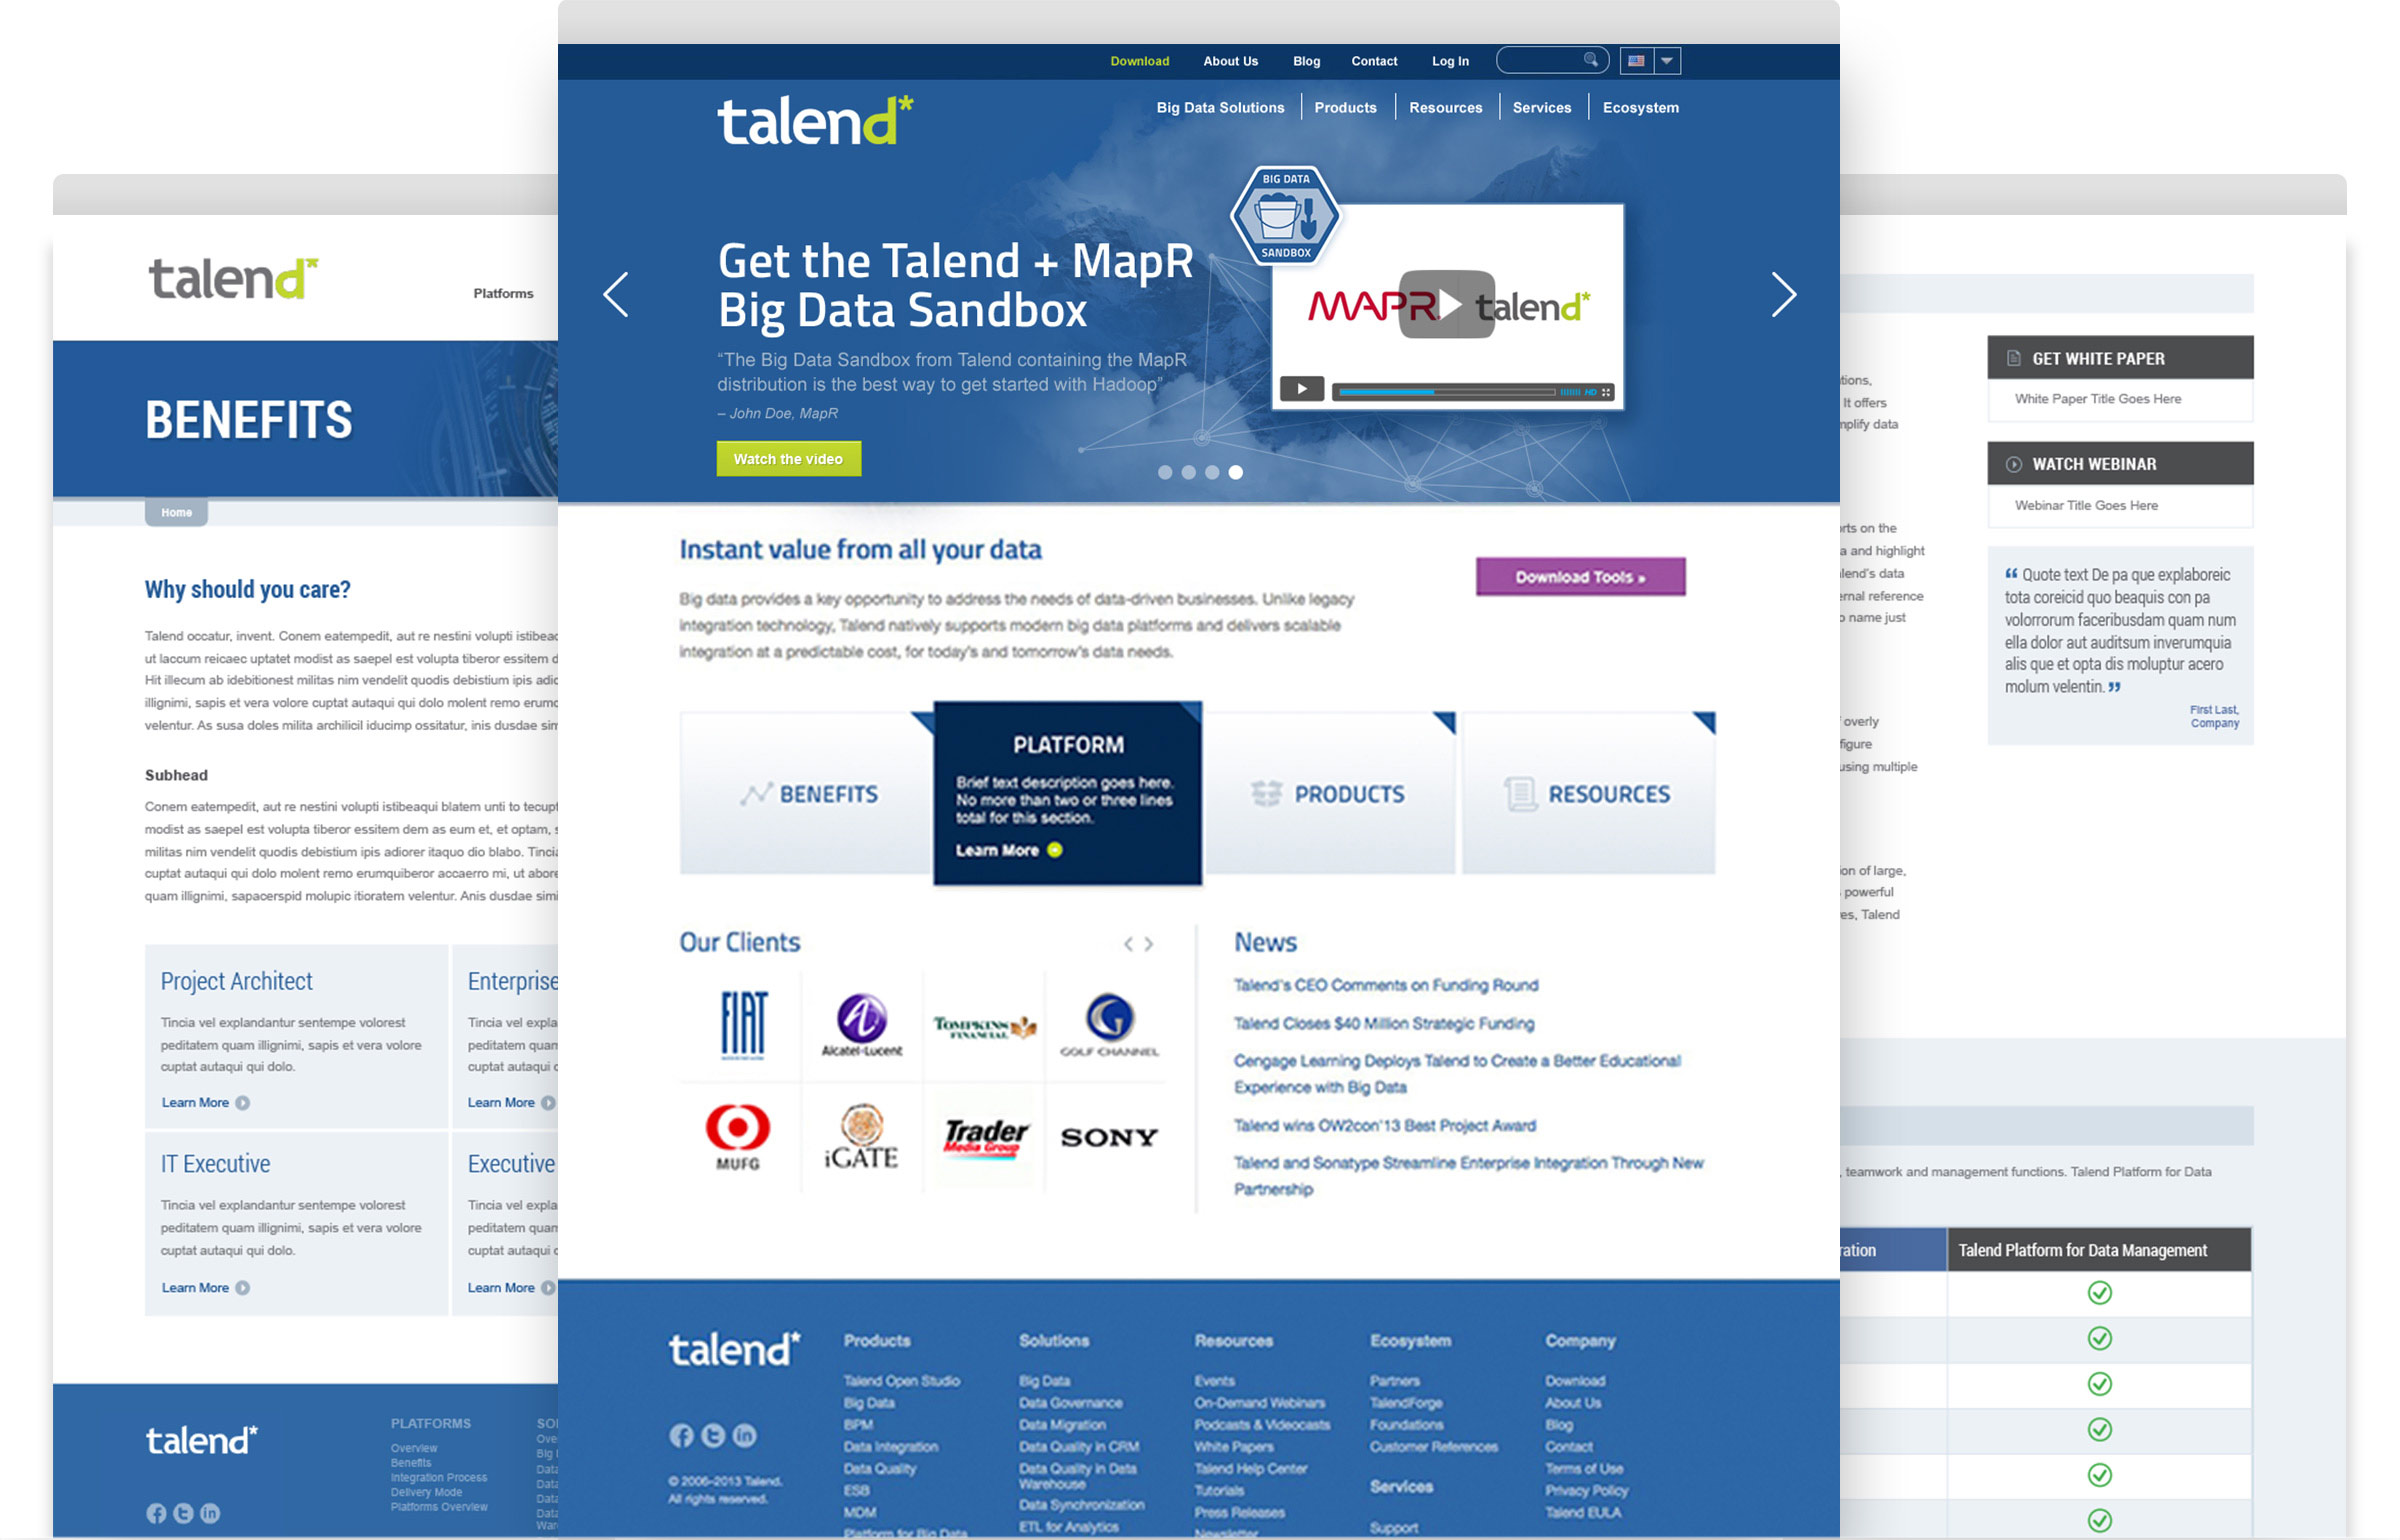 Talend website interior pages